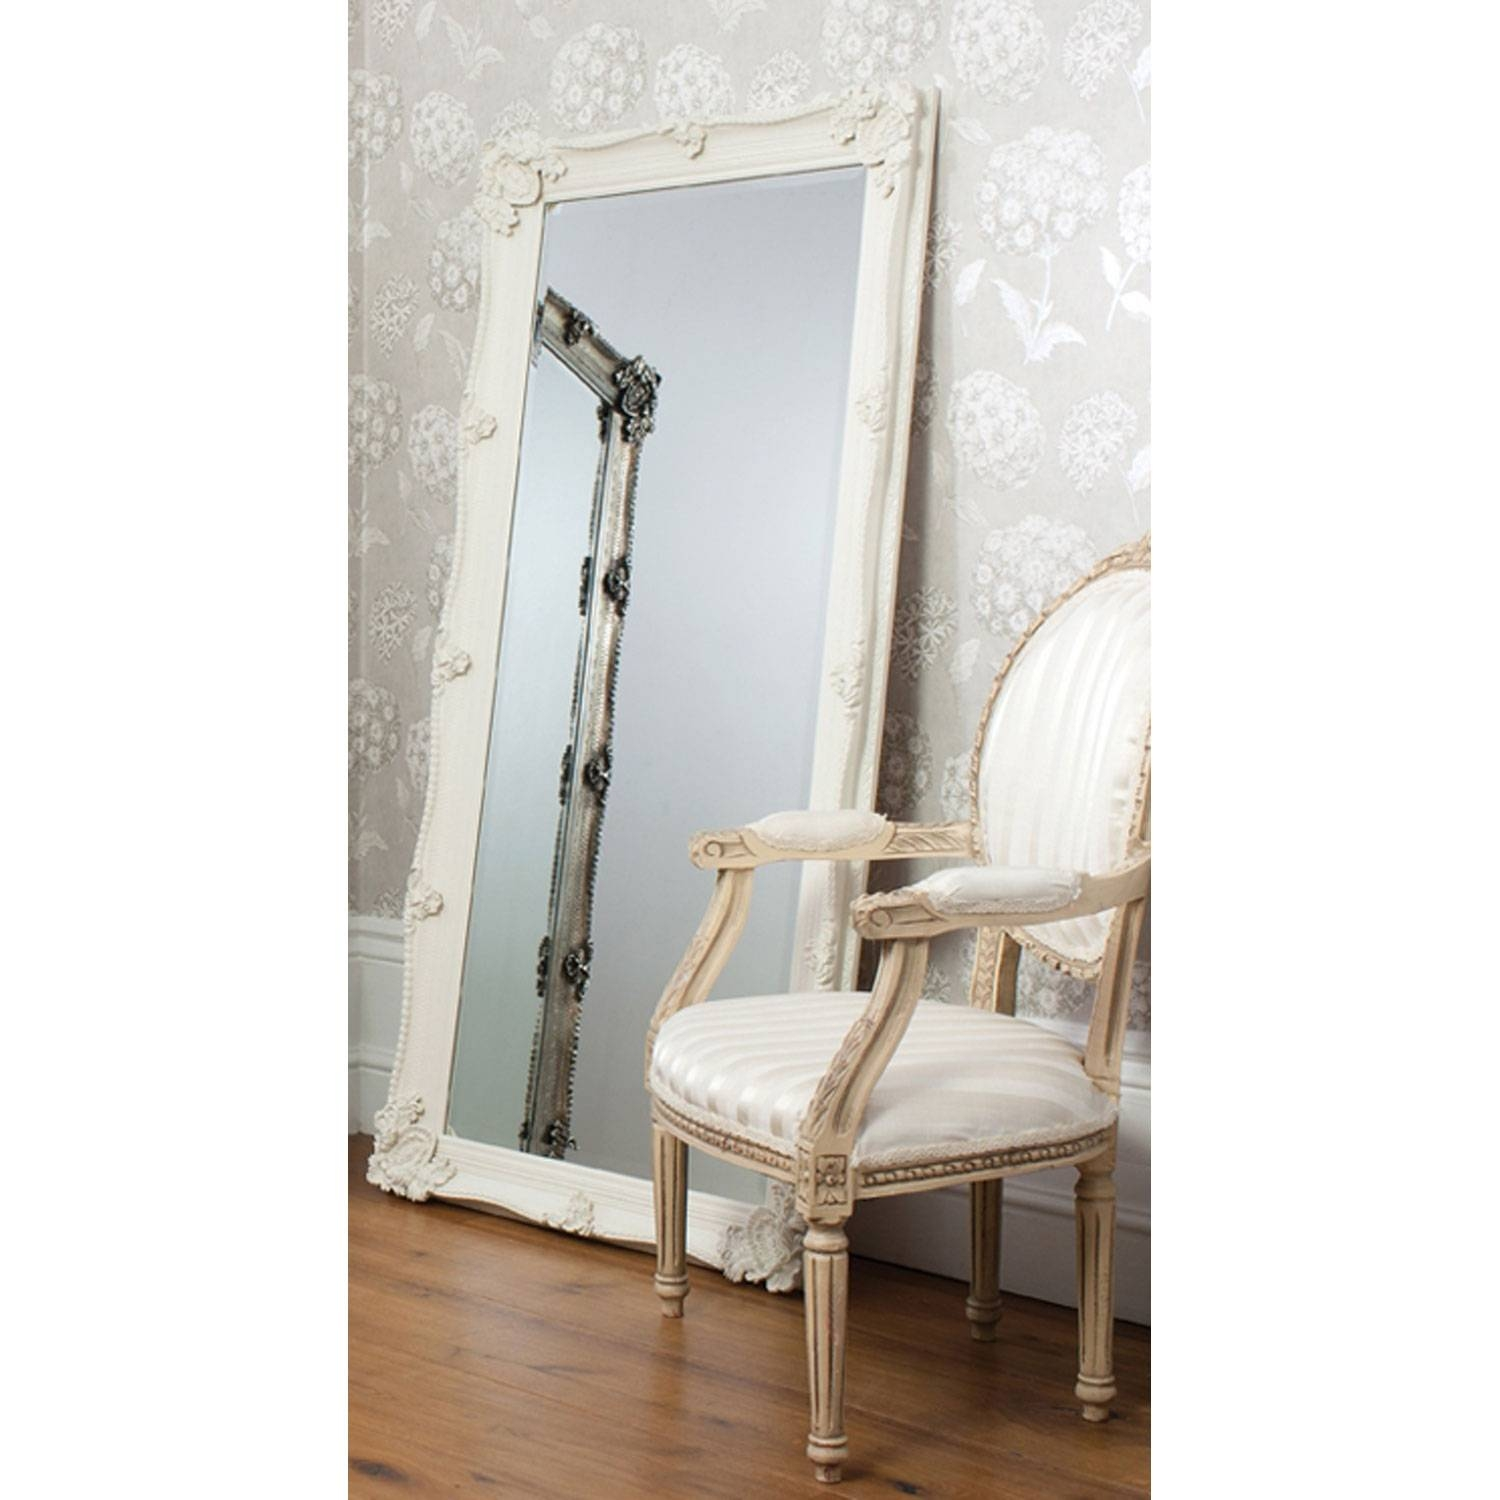 Bedroom: Leaner Mirror With White Frame On Wooden Floor Matched With Regard To Baroque Floor Mirrors (View 7 of 15)